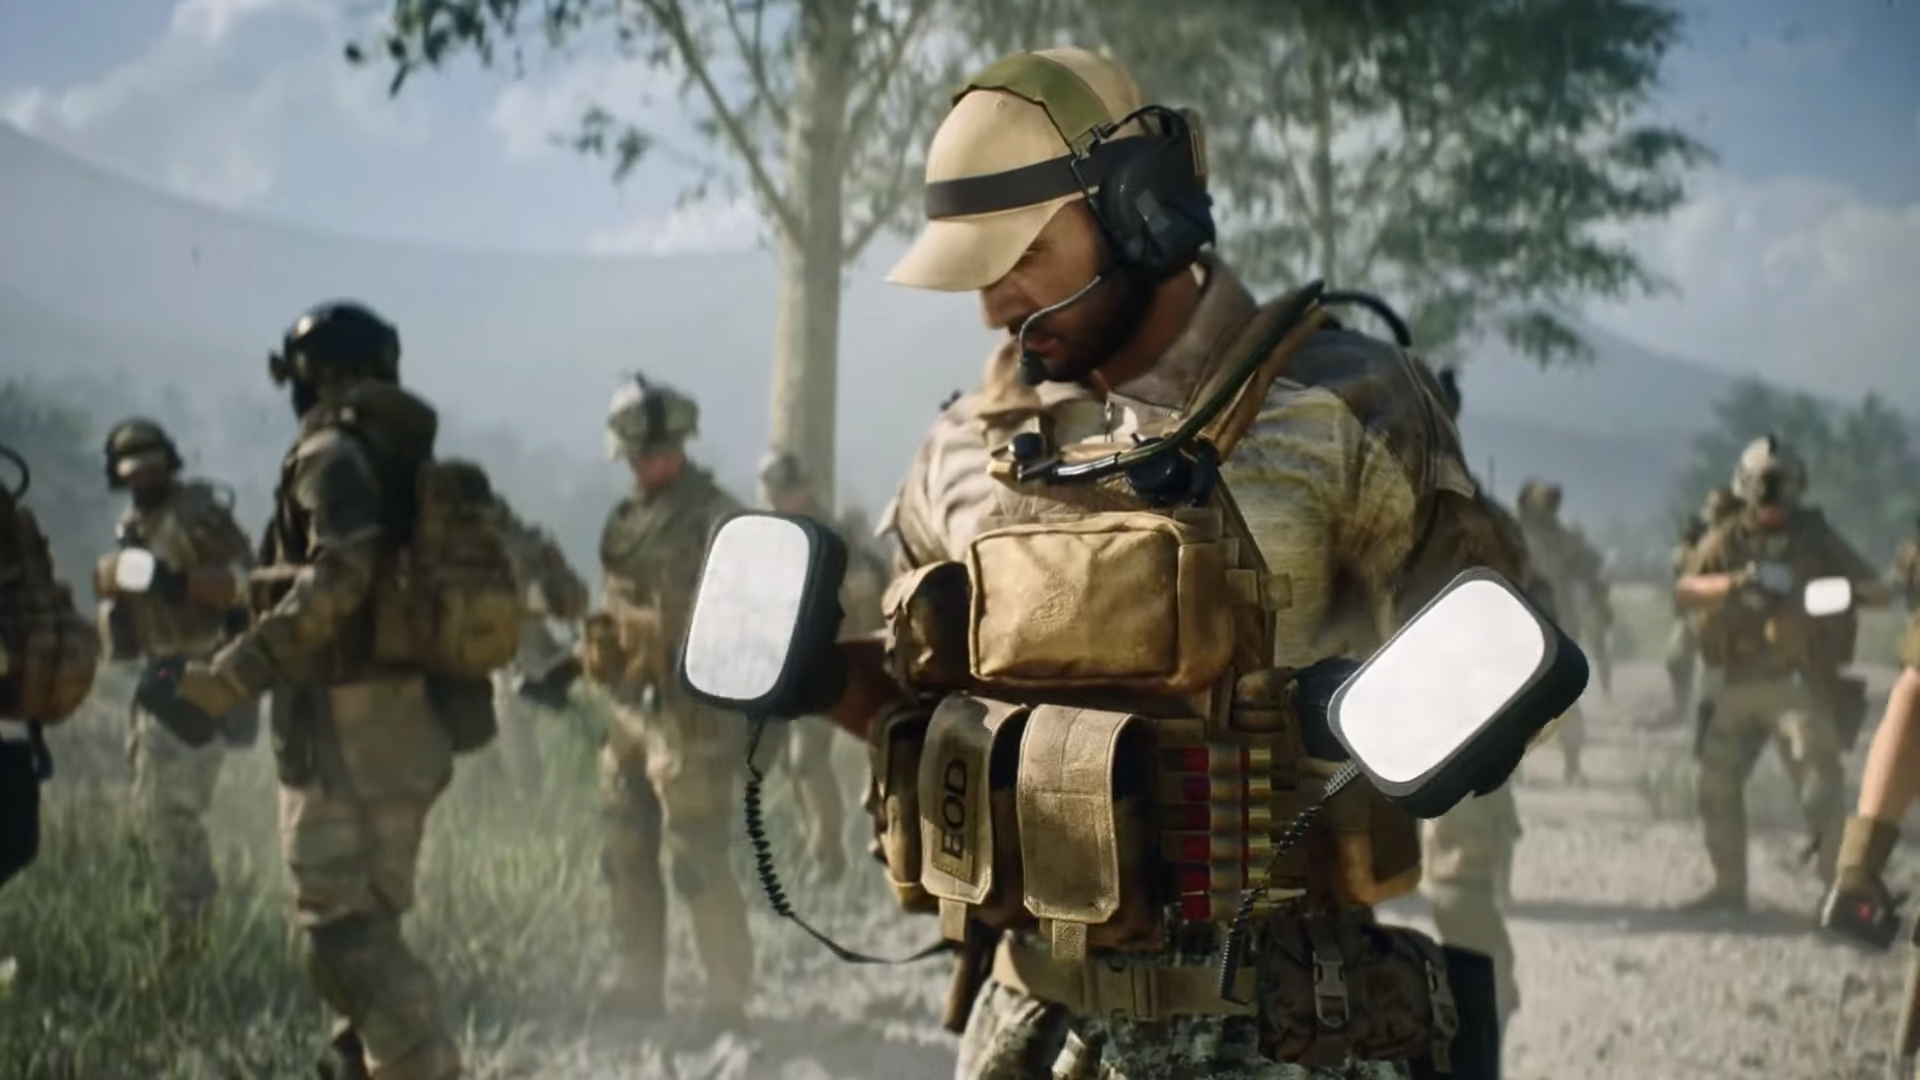 Battlefield is doubling down on user generated content with its Portal